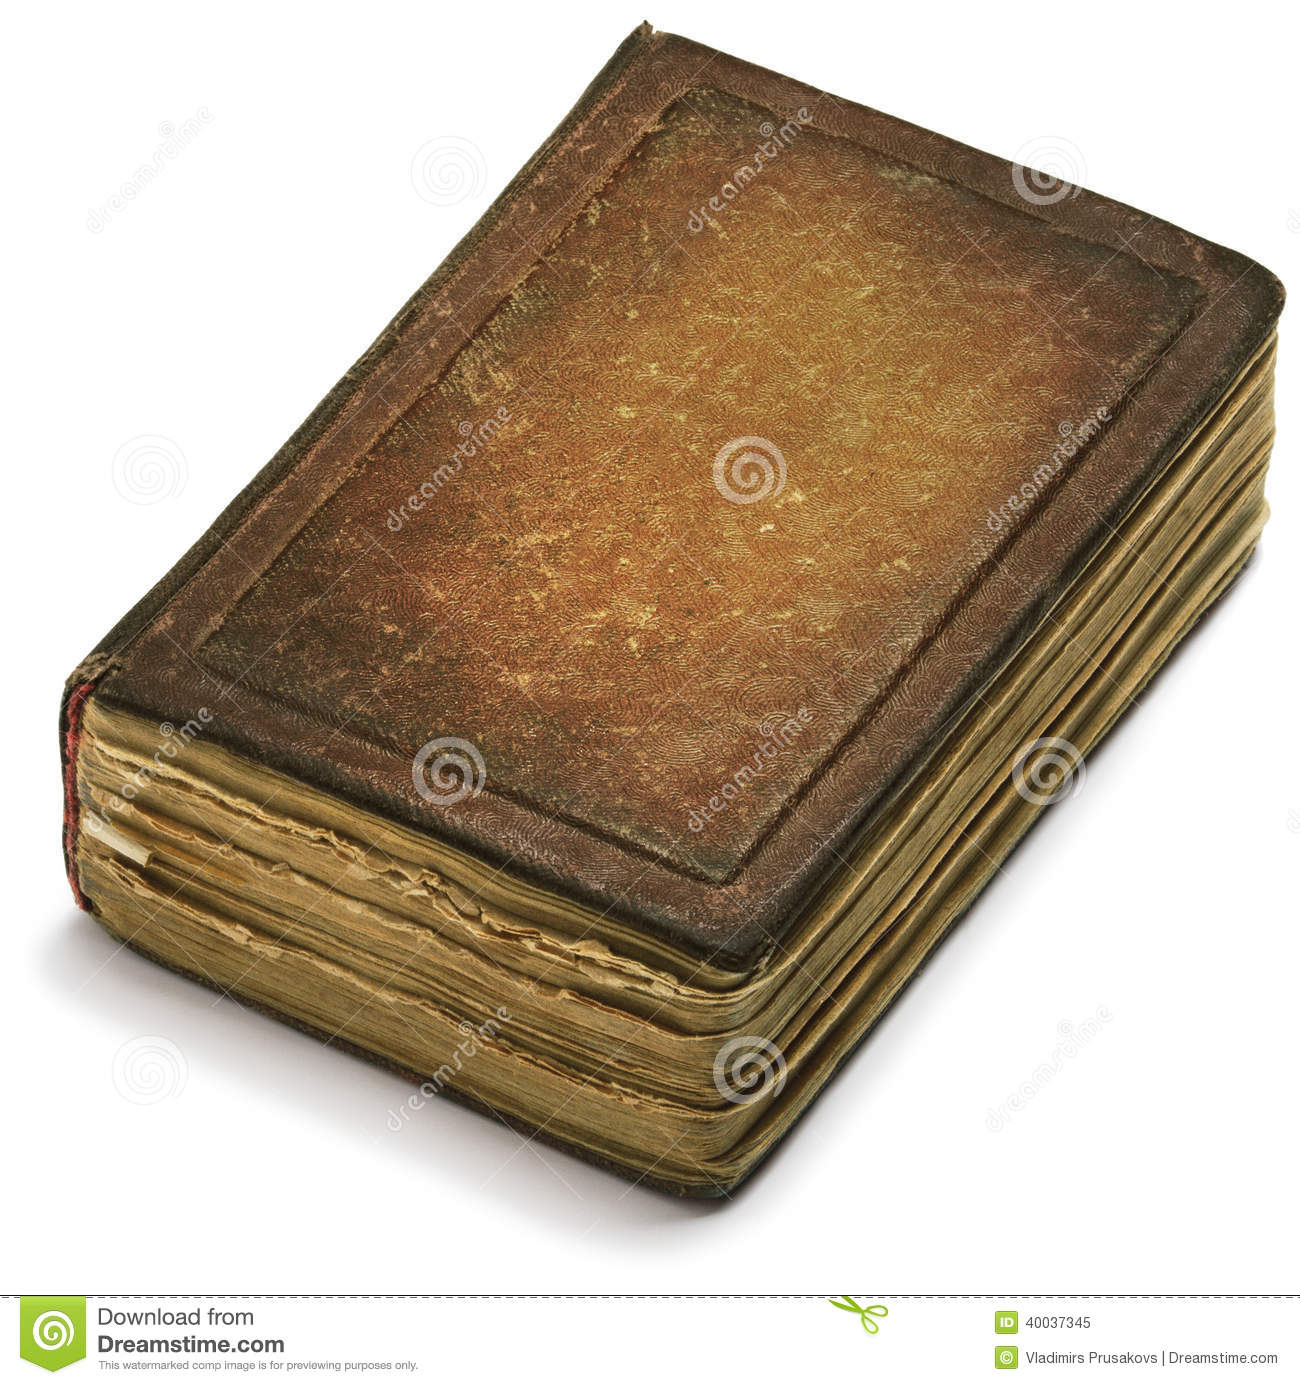 Book Cover White Background : Old book cover brown paper over white background stock